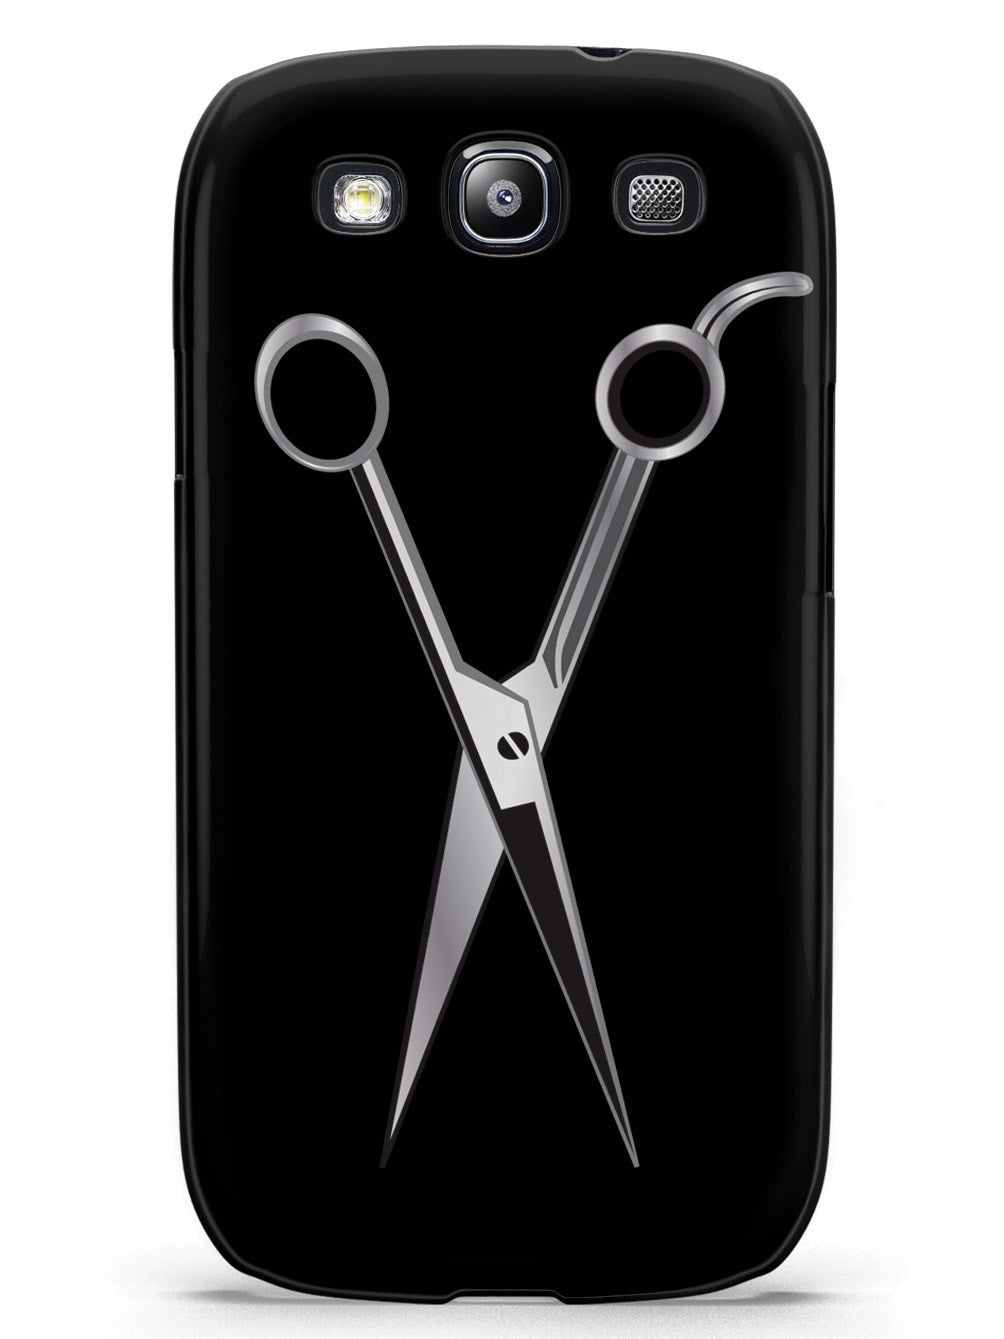 Hairstylist - Scissors Barber Hair Dresser  Case